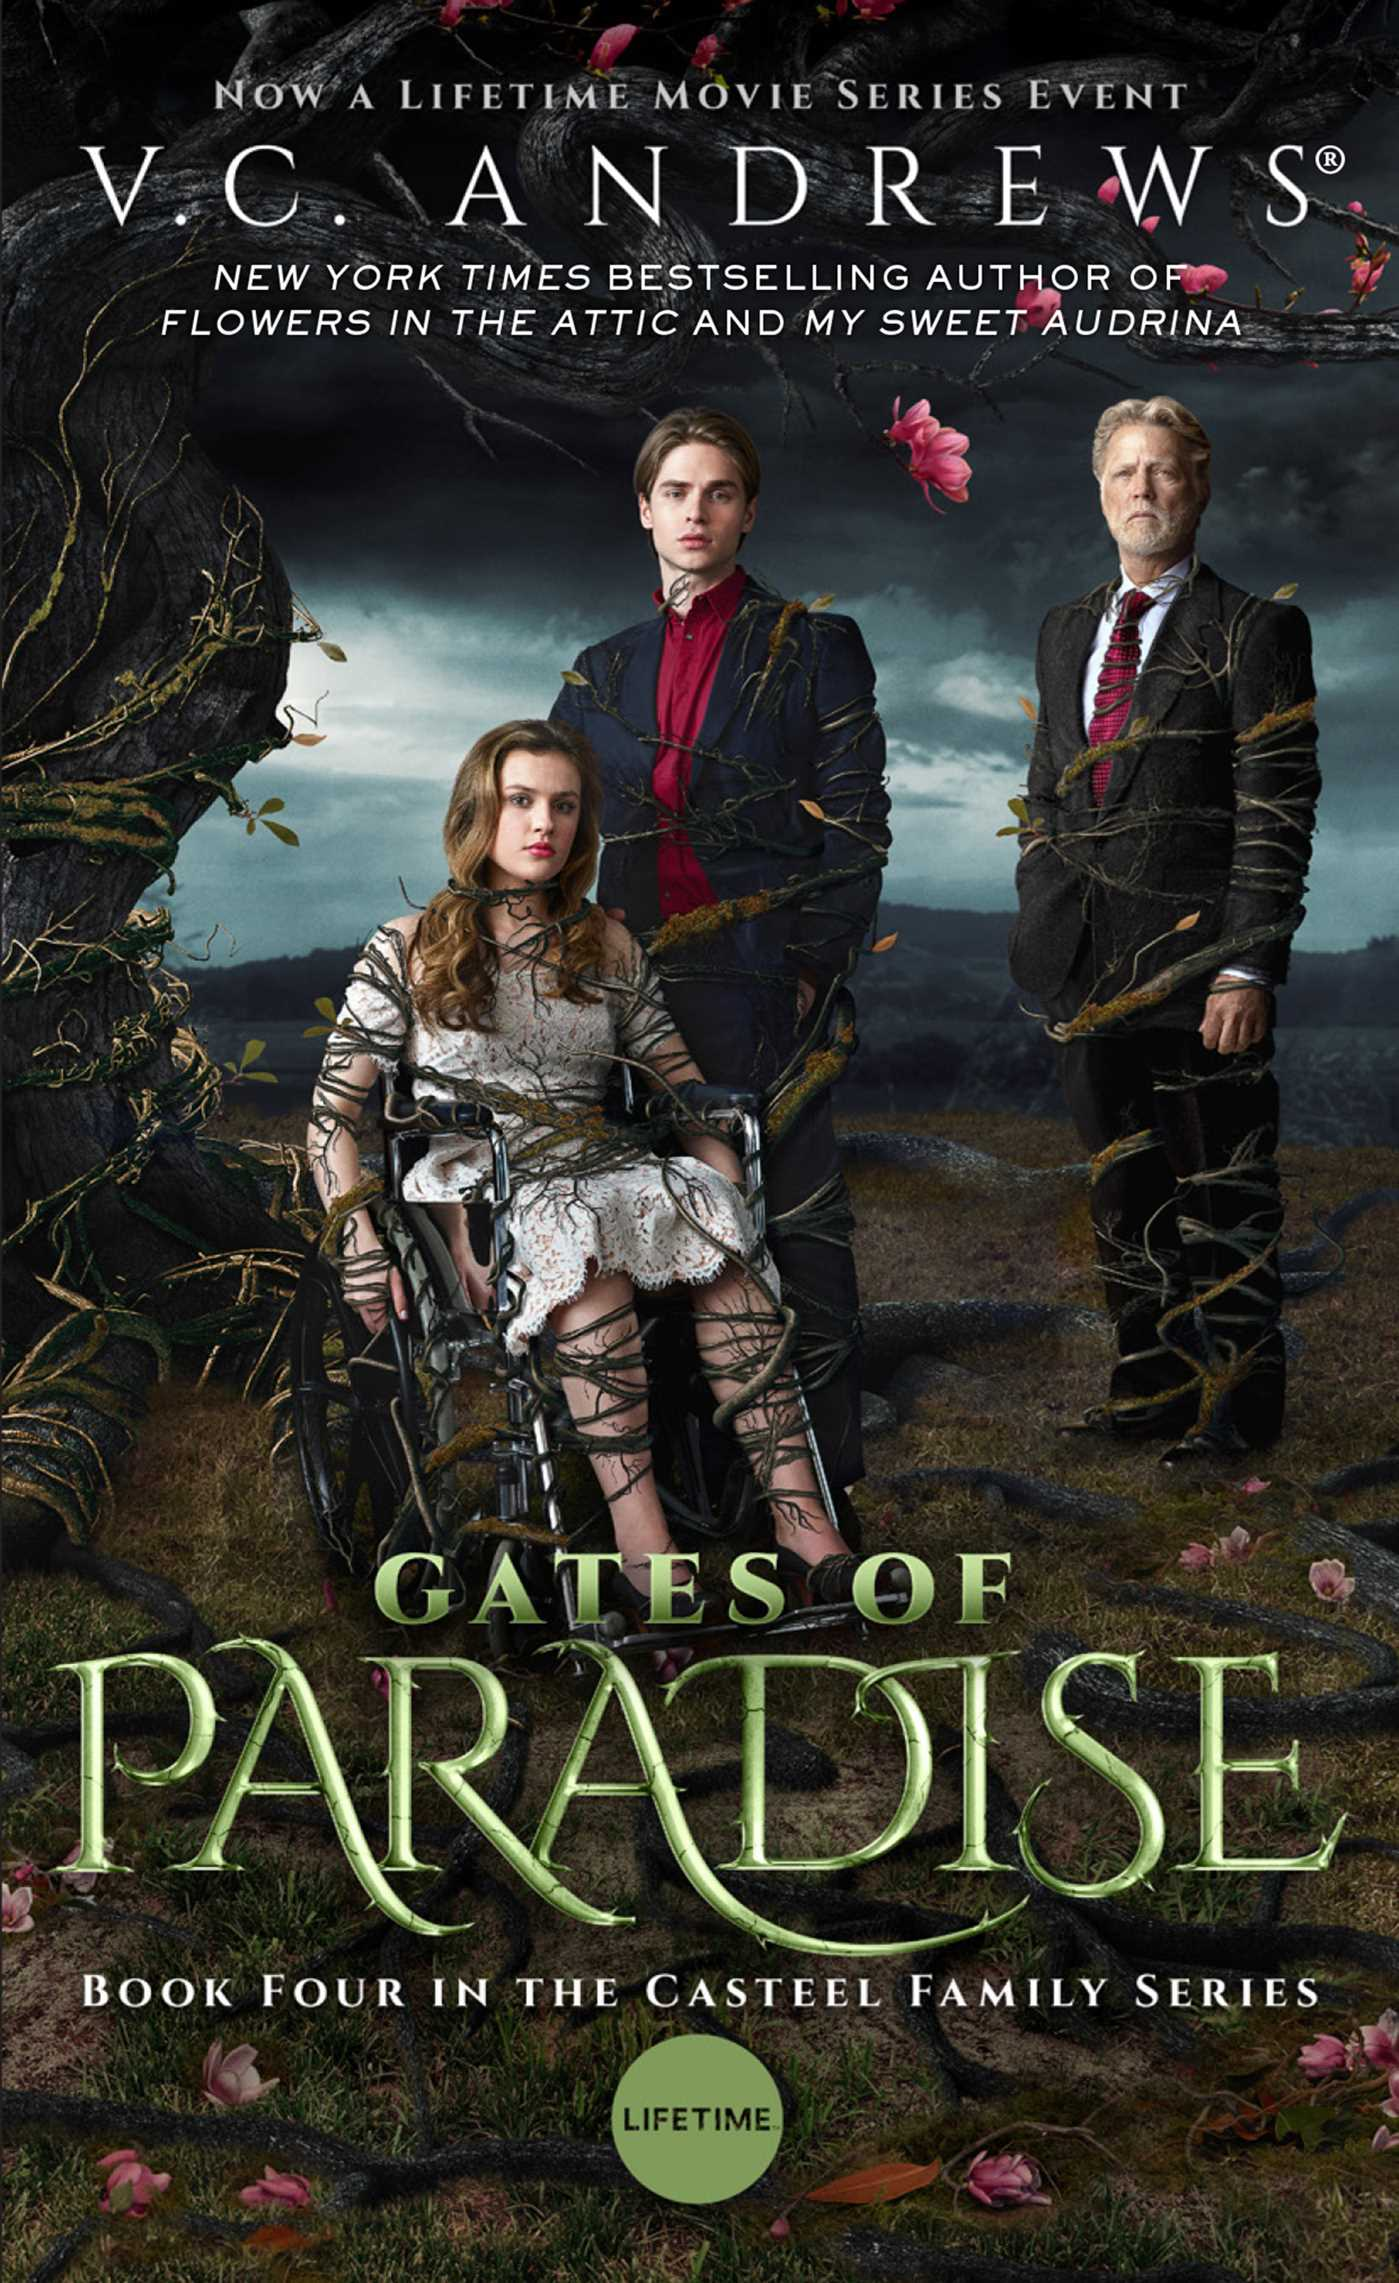 Gates-of-paradise-9781439187760_hr